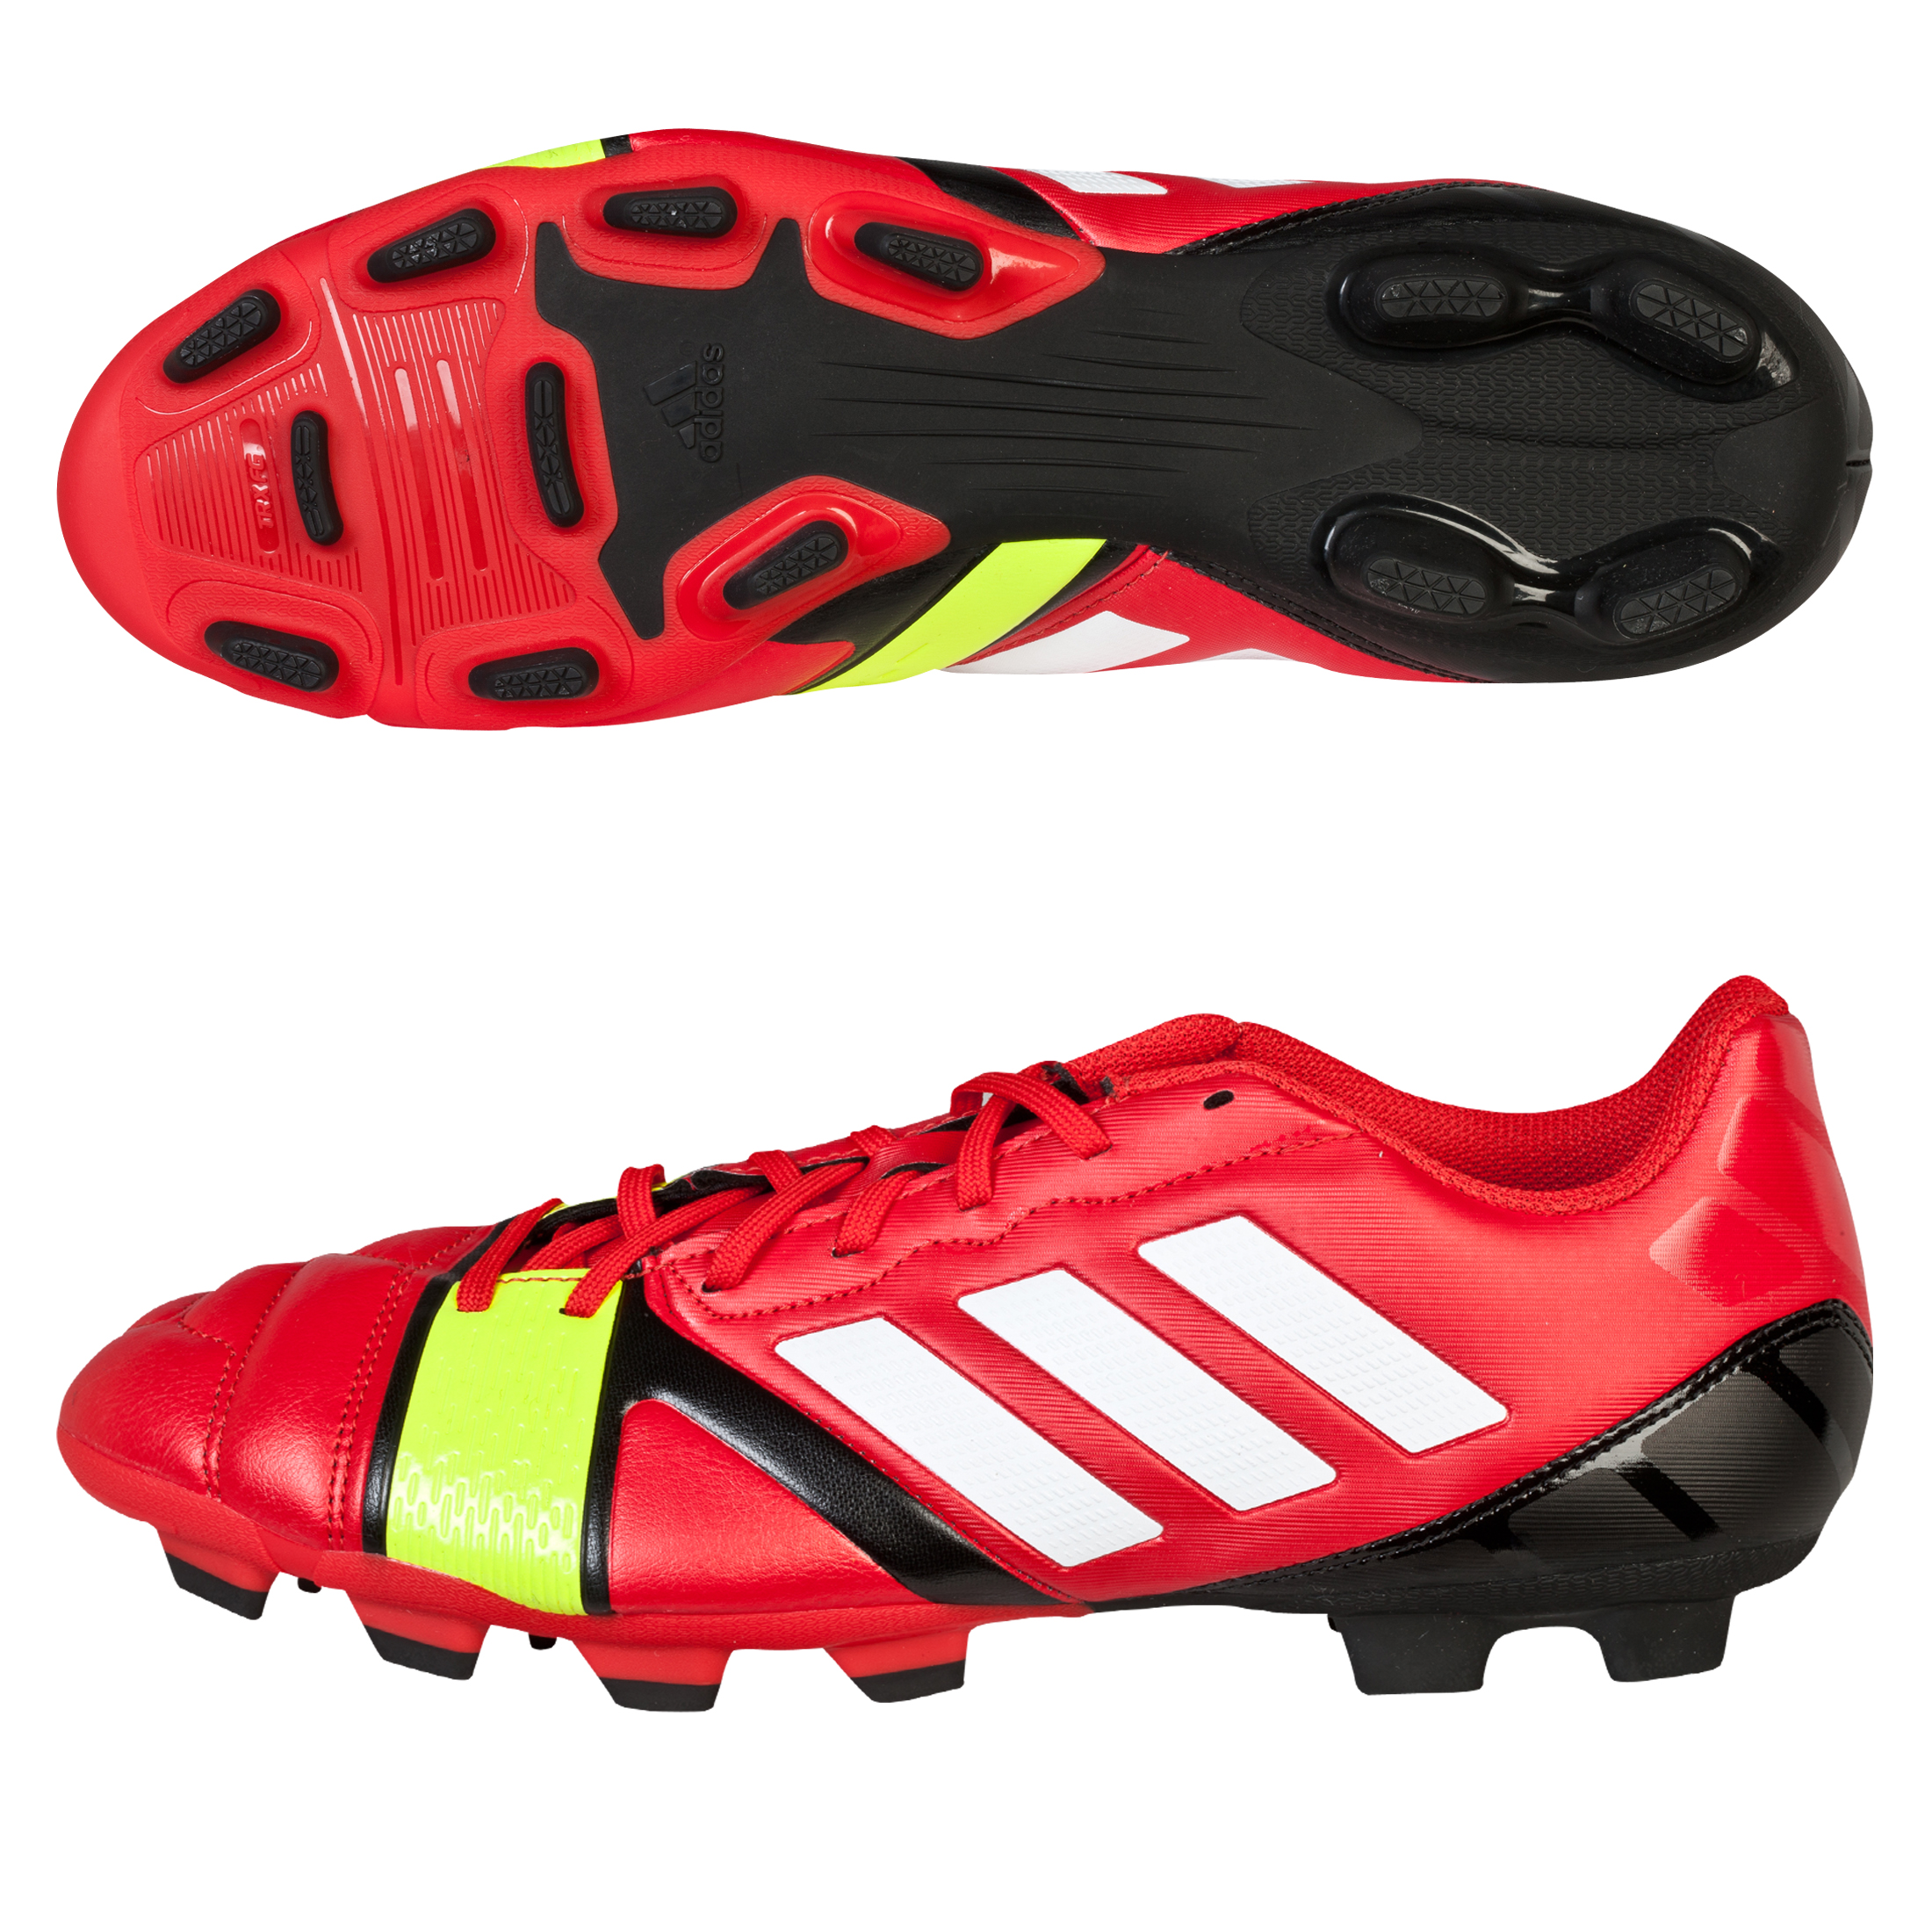 Adidas Nitrocharge 3.0 TRX Firm Ground Football Boots Red